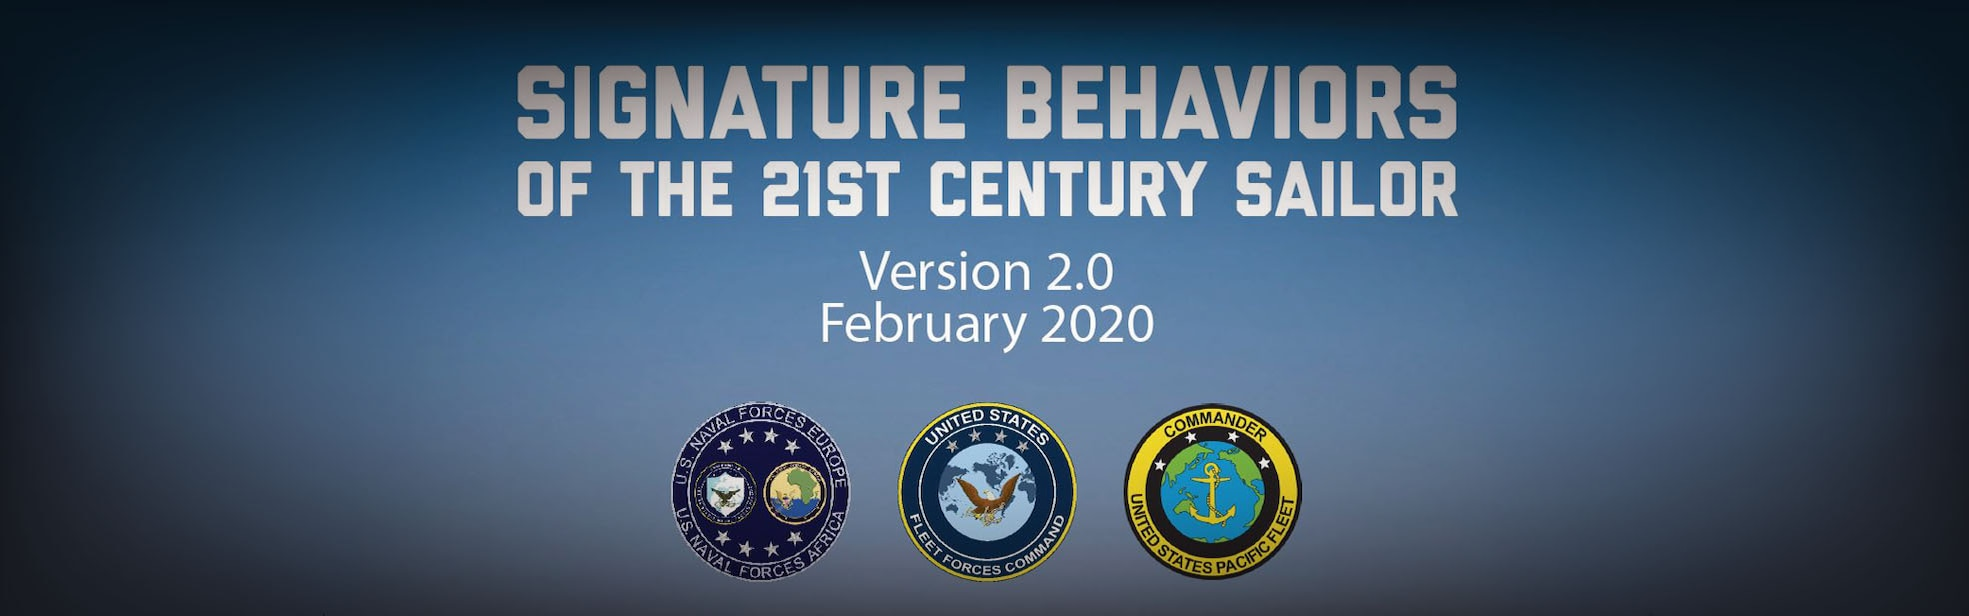 A U.S. Fleet Forces Command website banner for the Signature Behaviors of the 21st Century Sailor.